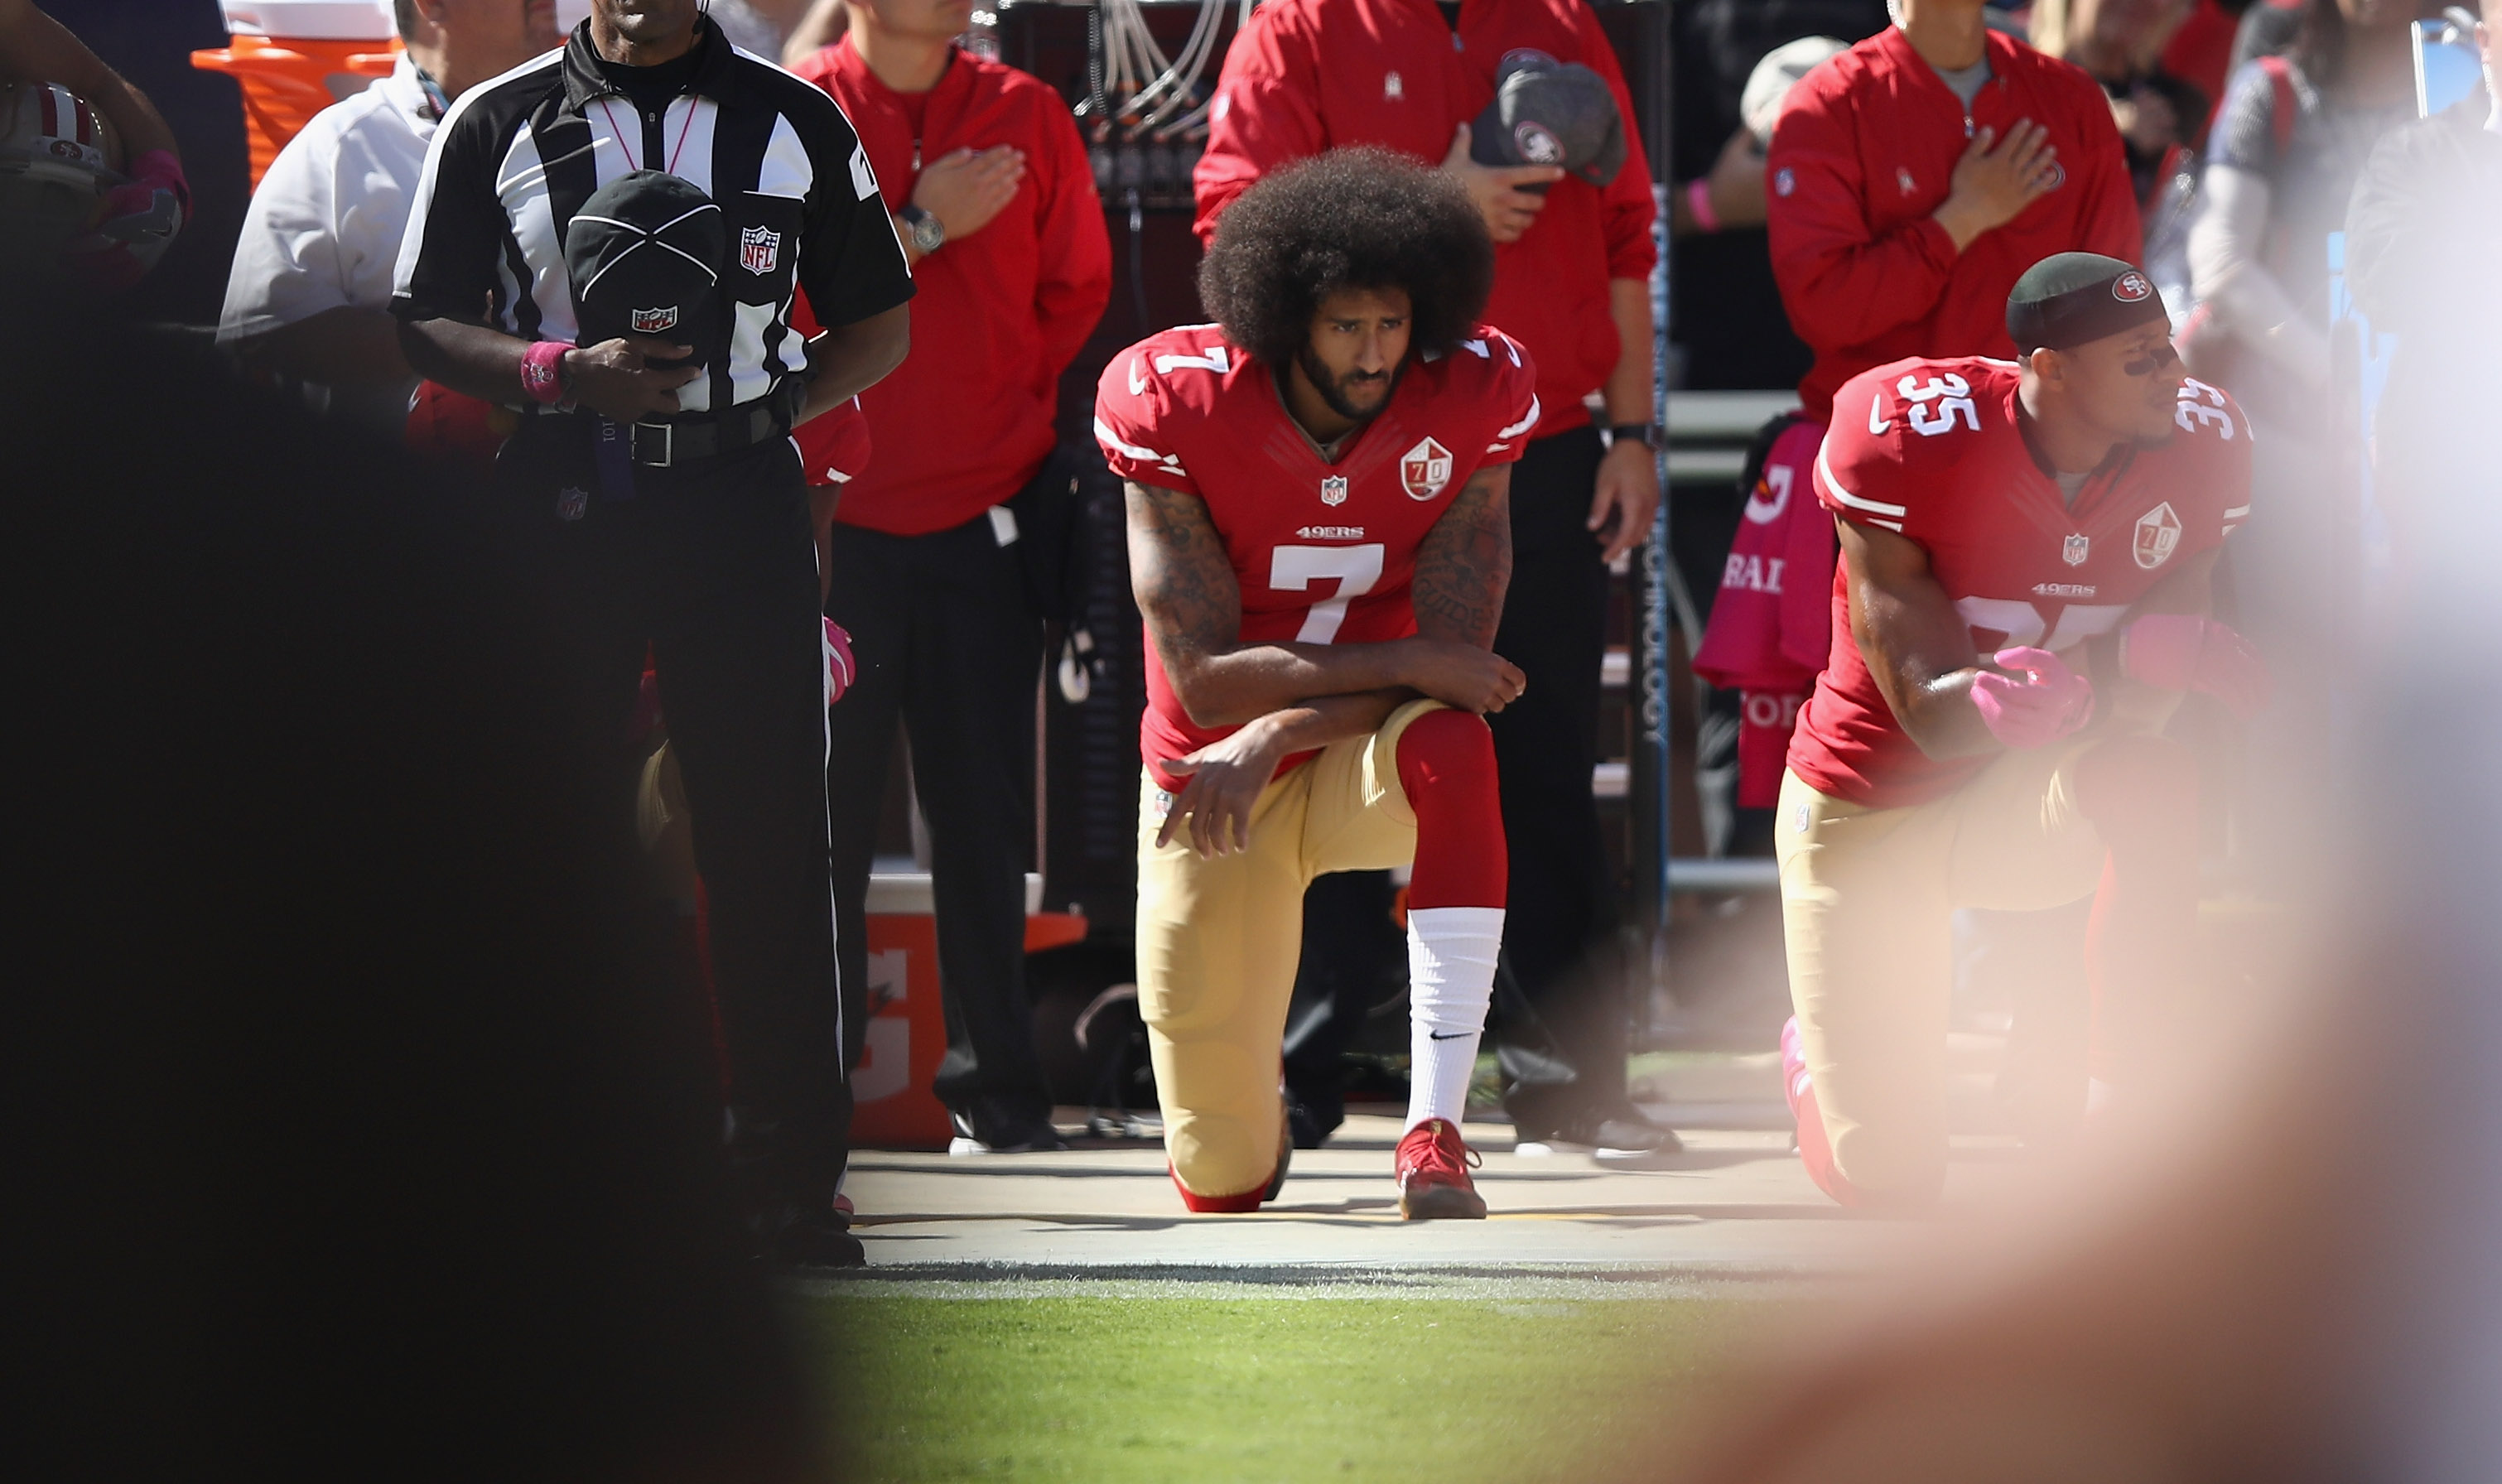 Colin Kaepernick (#7) when he played for the San Francisco 49ers kneels for the national anthem (Photo by Ezra Shaw/Getty Images)